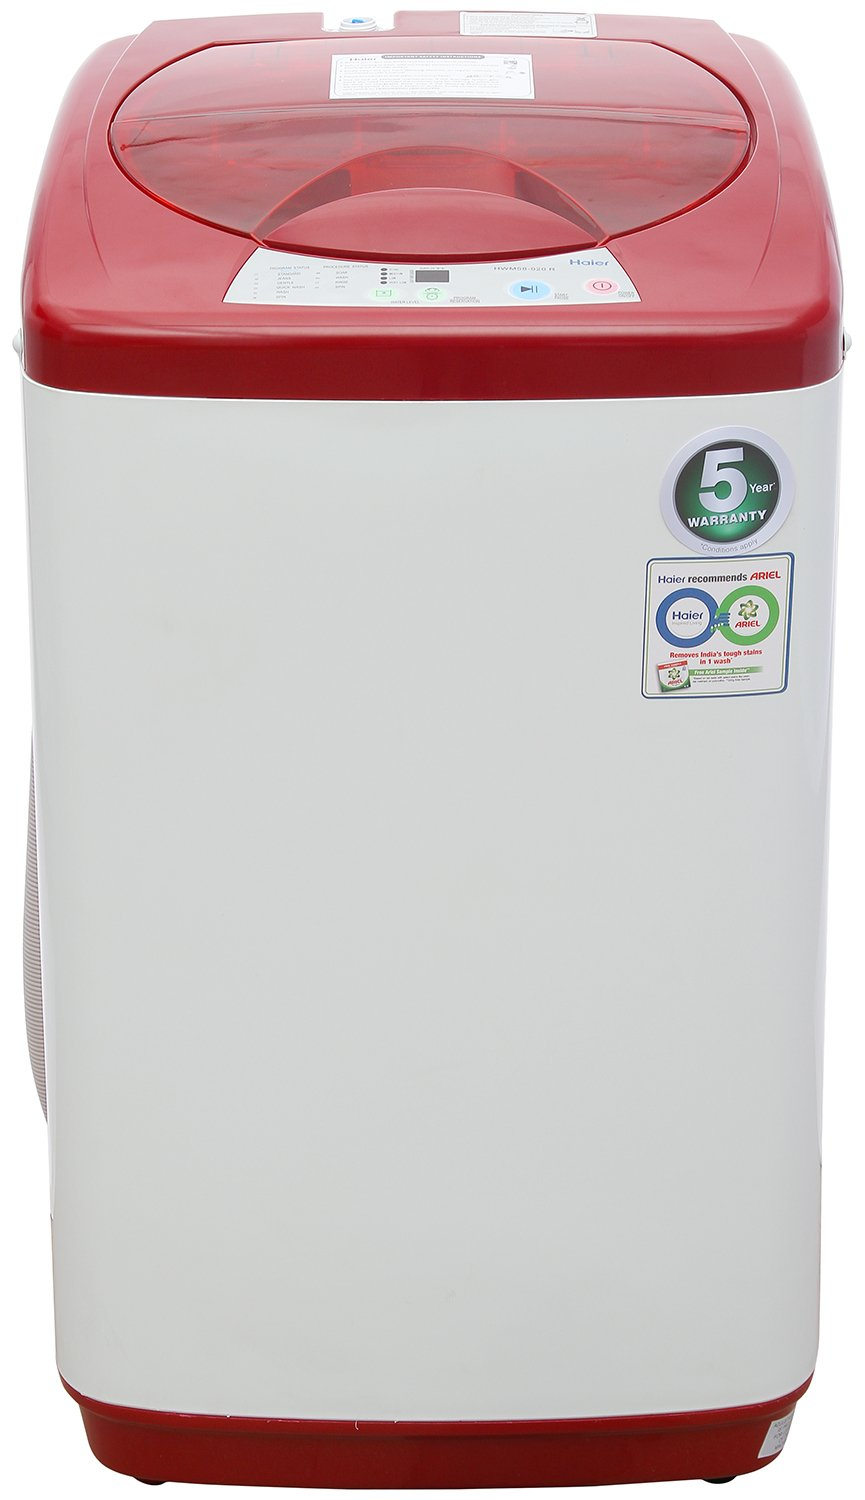 Haier 5.8 kg Fully-Automatic Top Loading Washing Machine (58-020-R, Red)